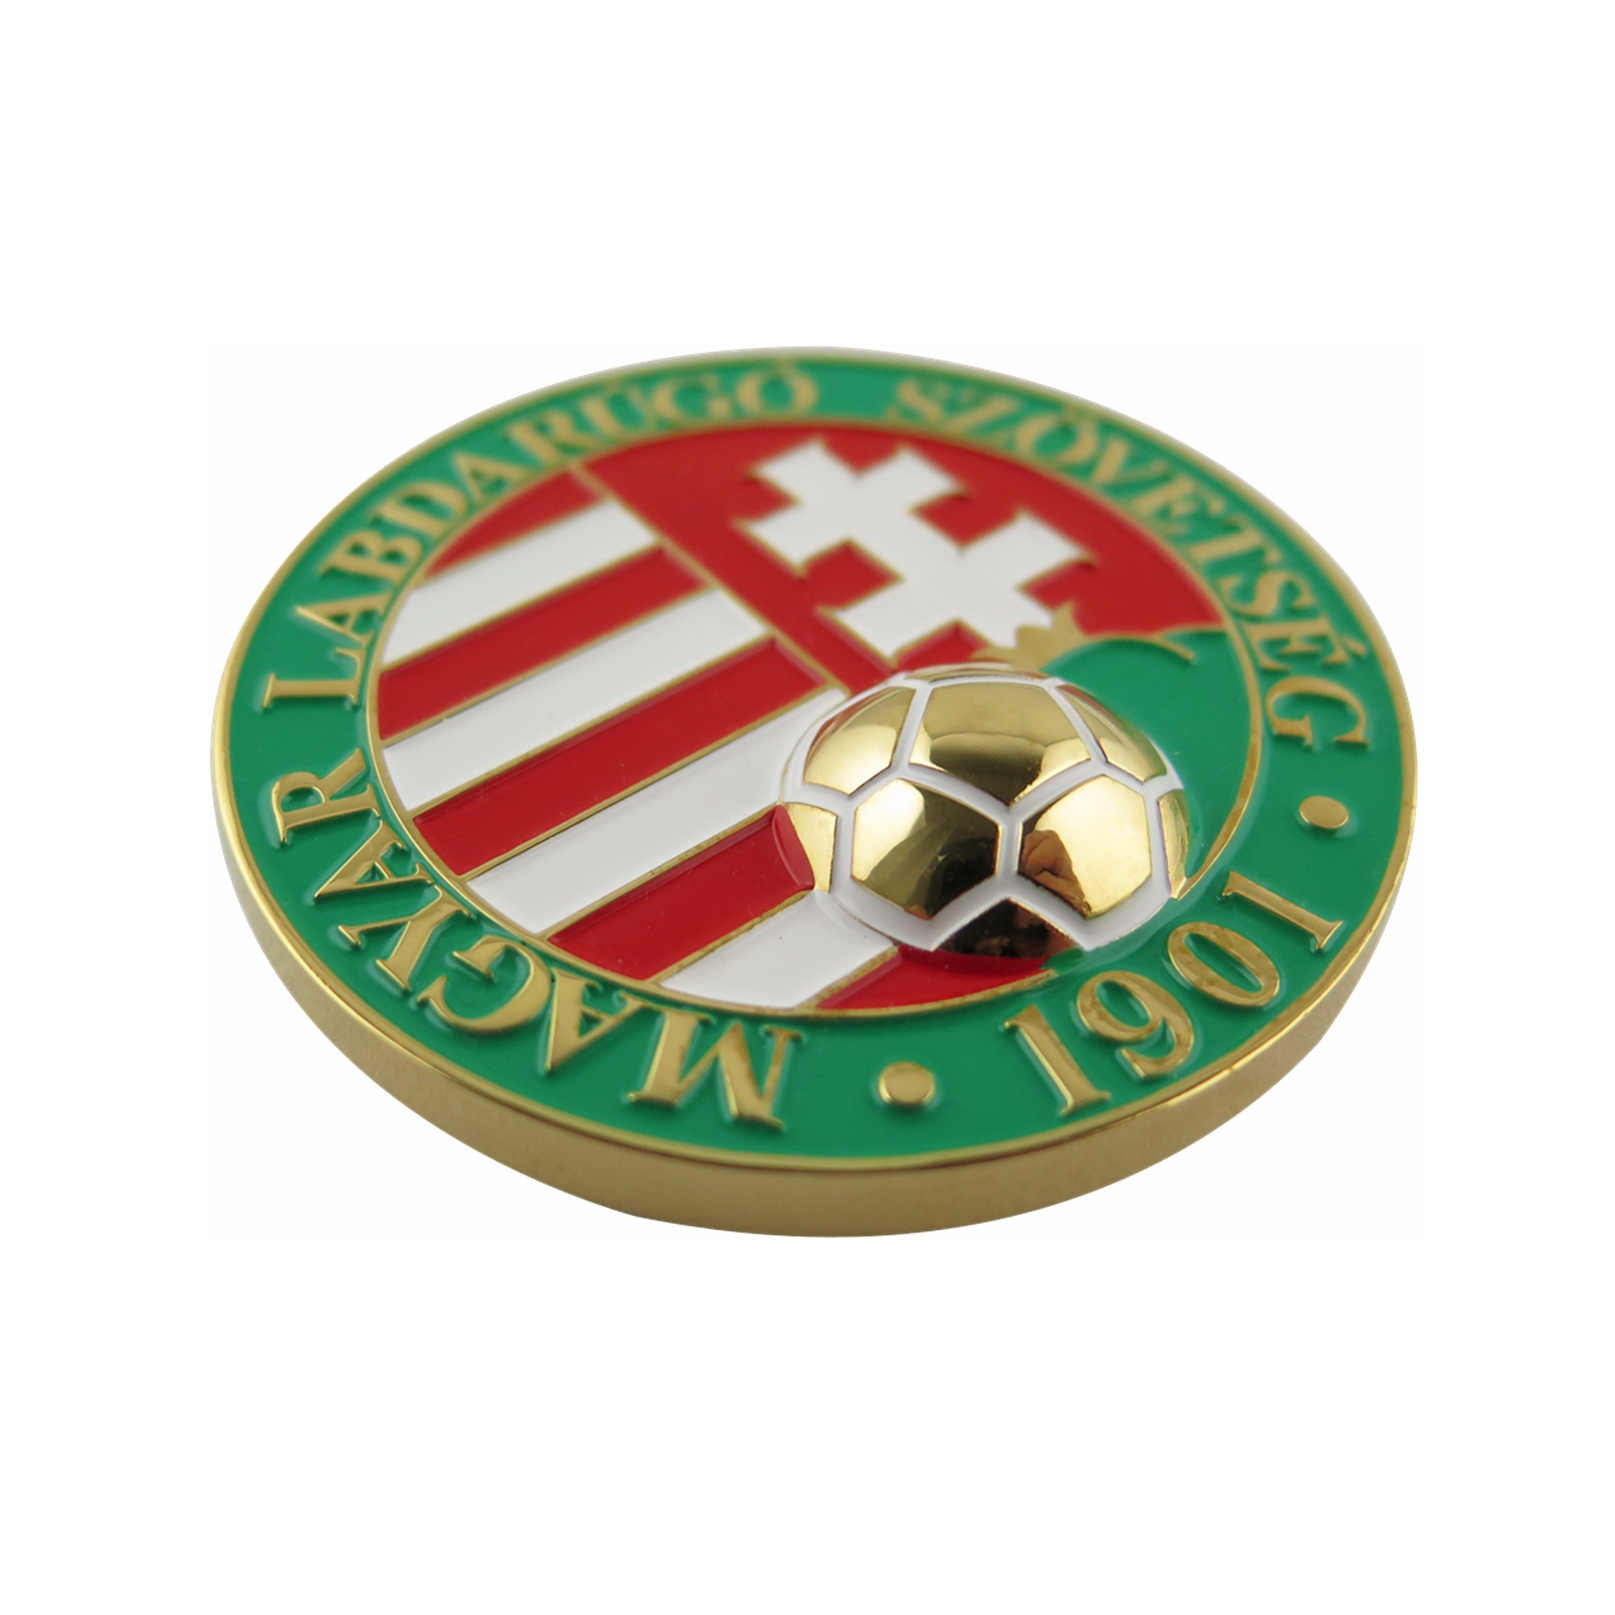 3D Football Challenge Coins